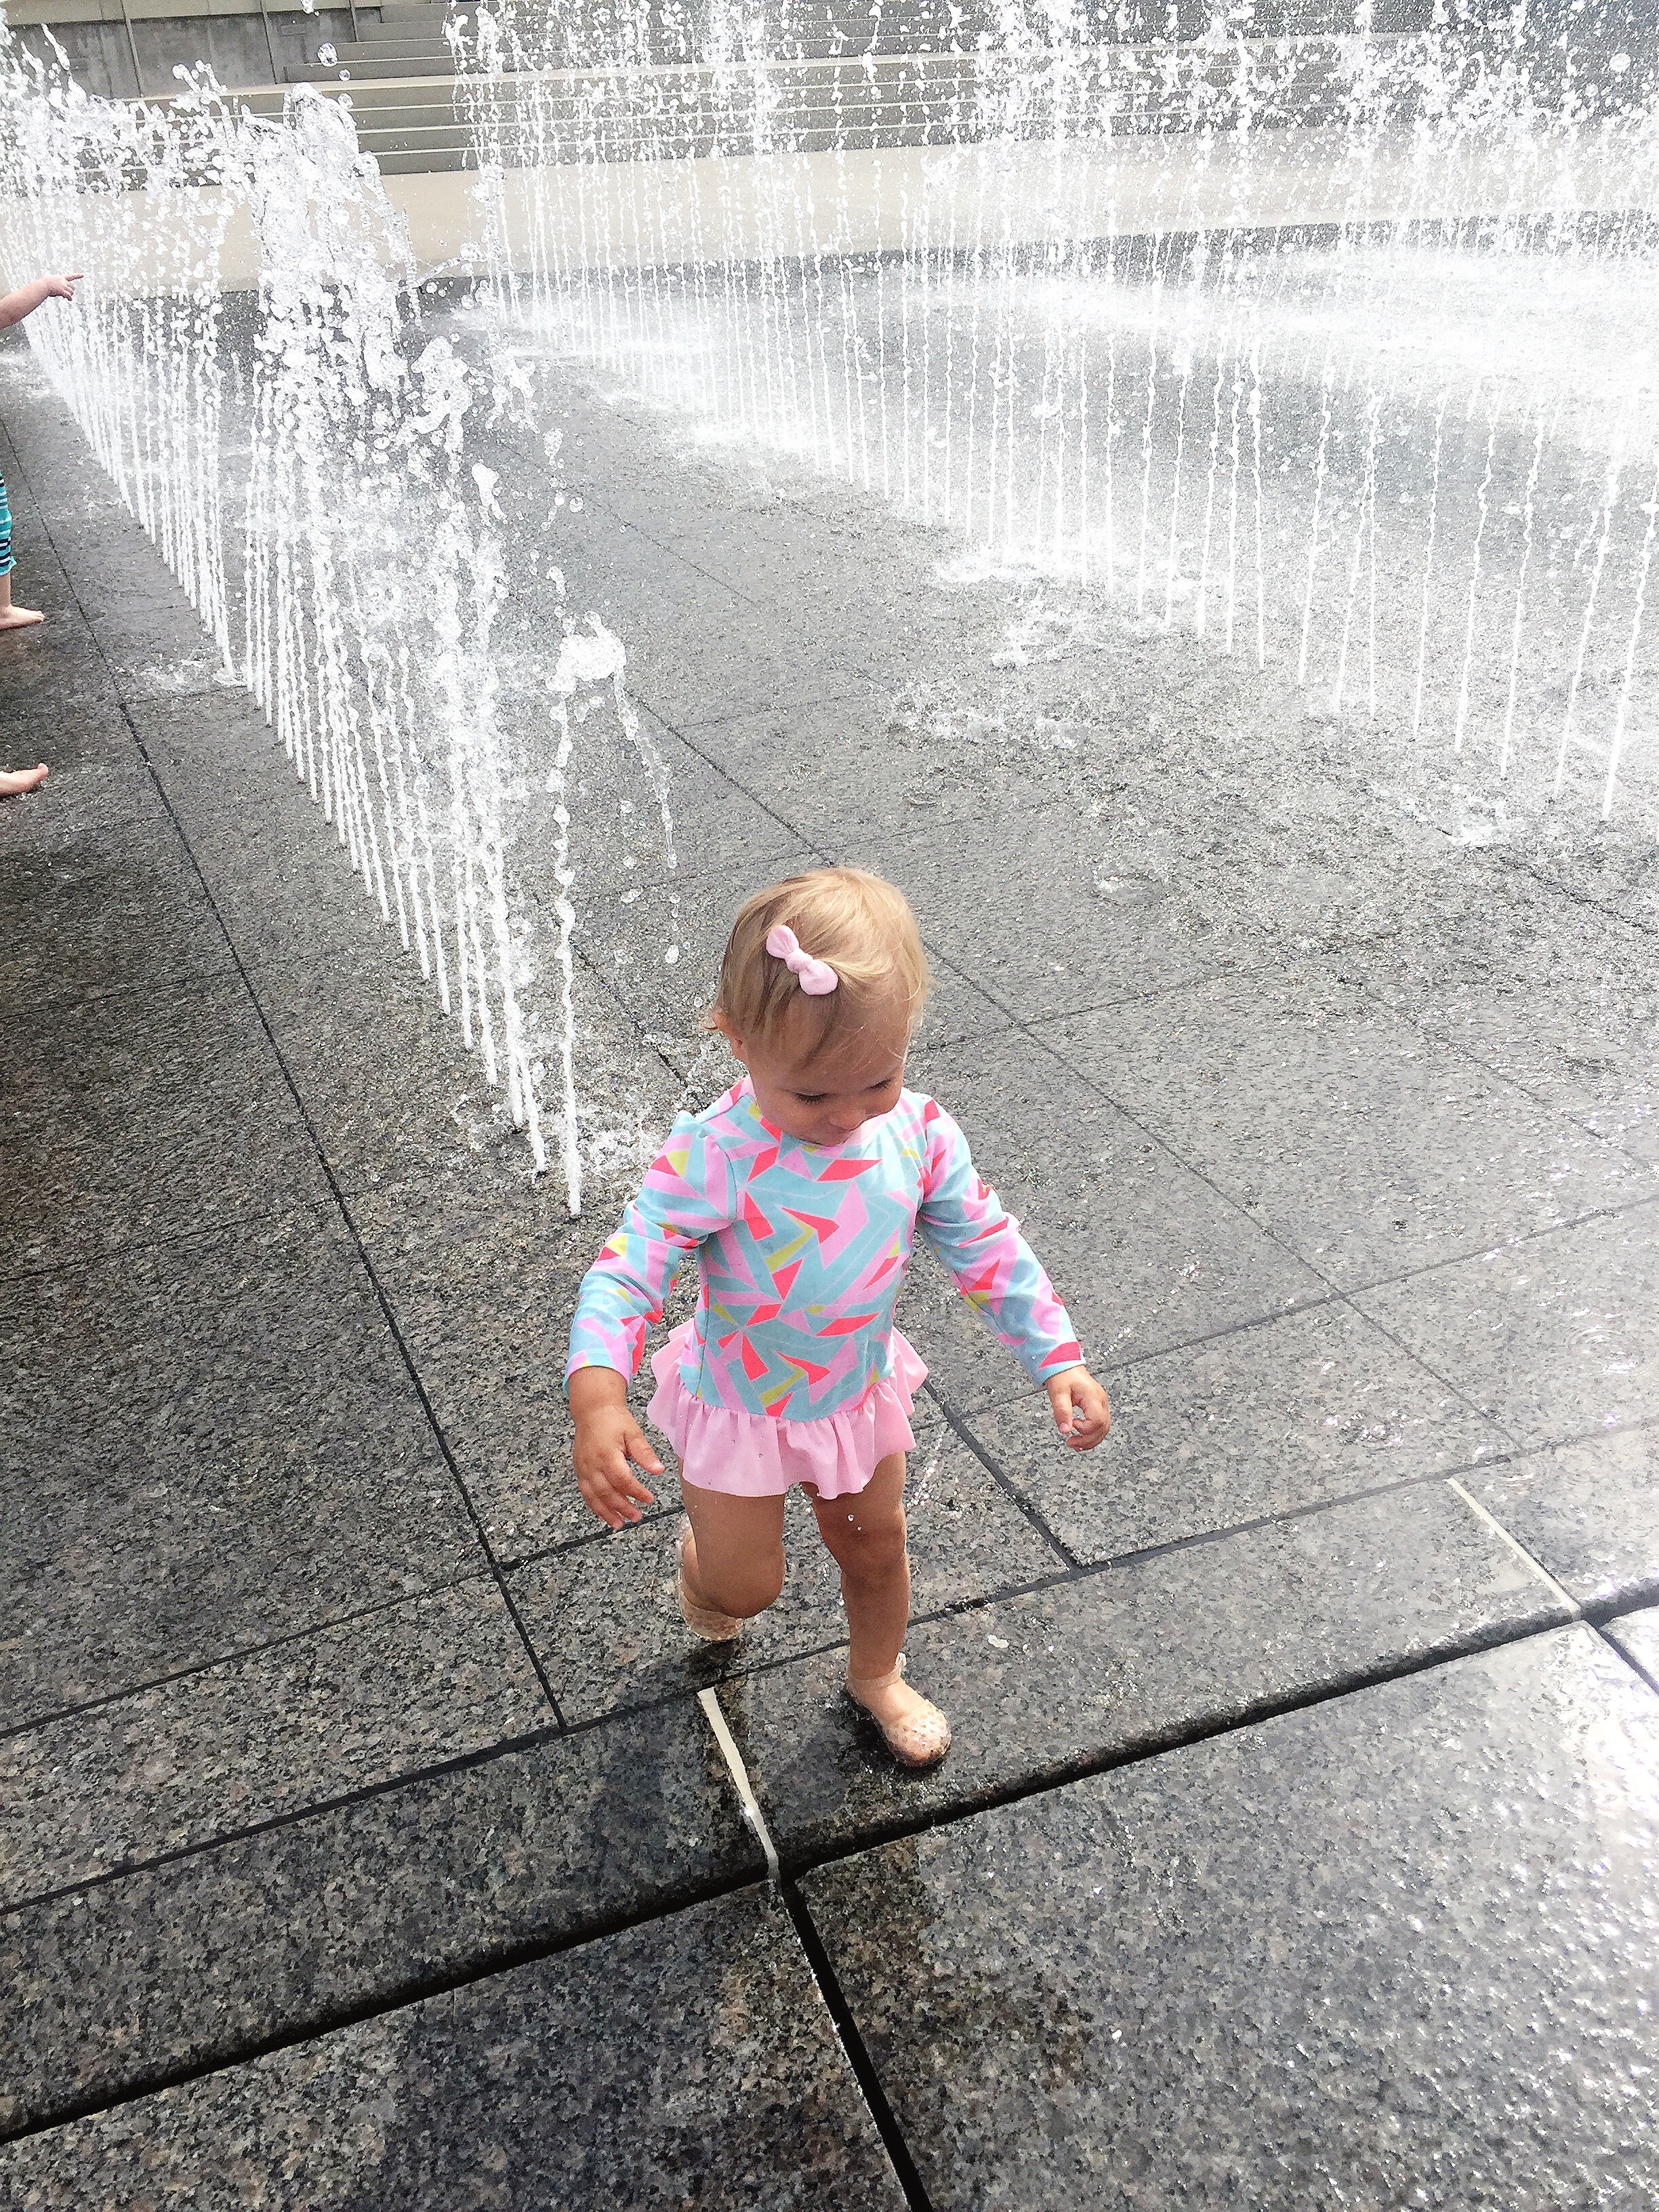 scioto mile splash pad